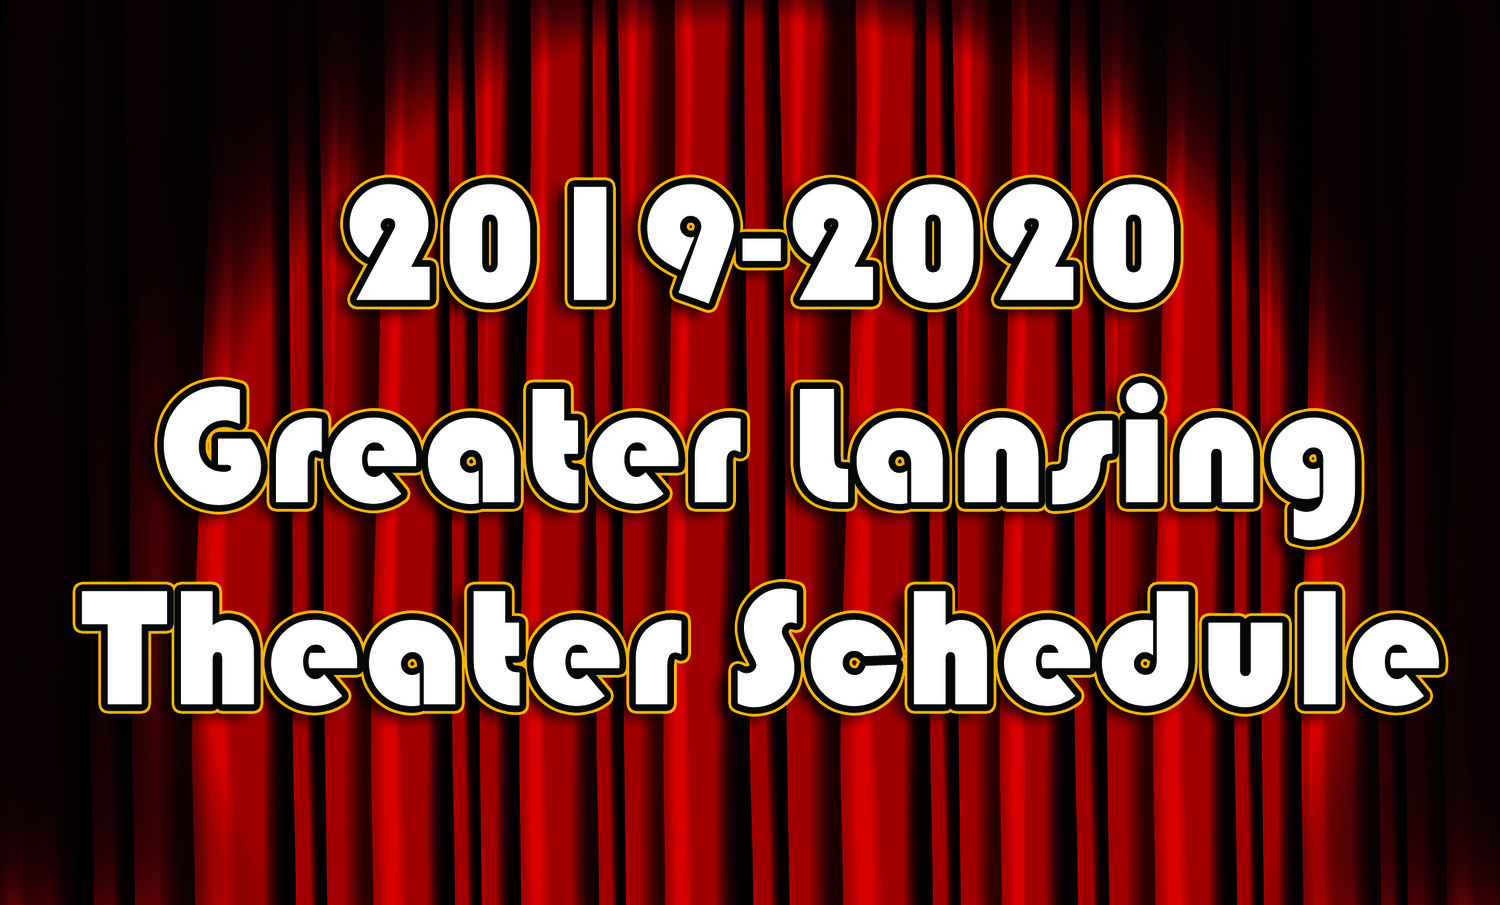 Middletown Balloon Festival 2020 2019 2020 Greater Lansing Theater Schedule   City Pulse